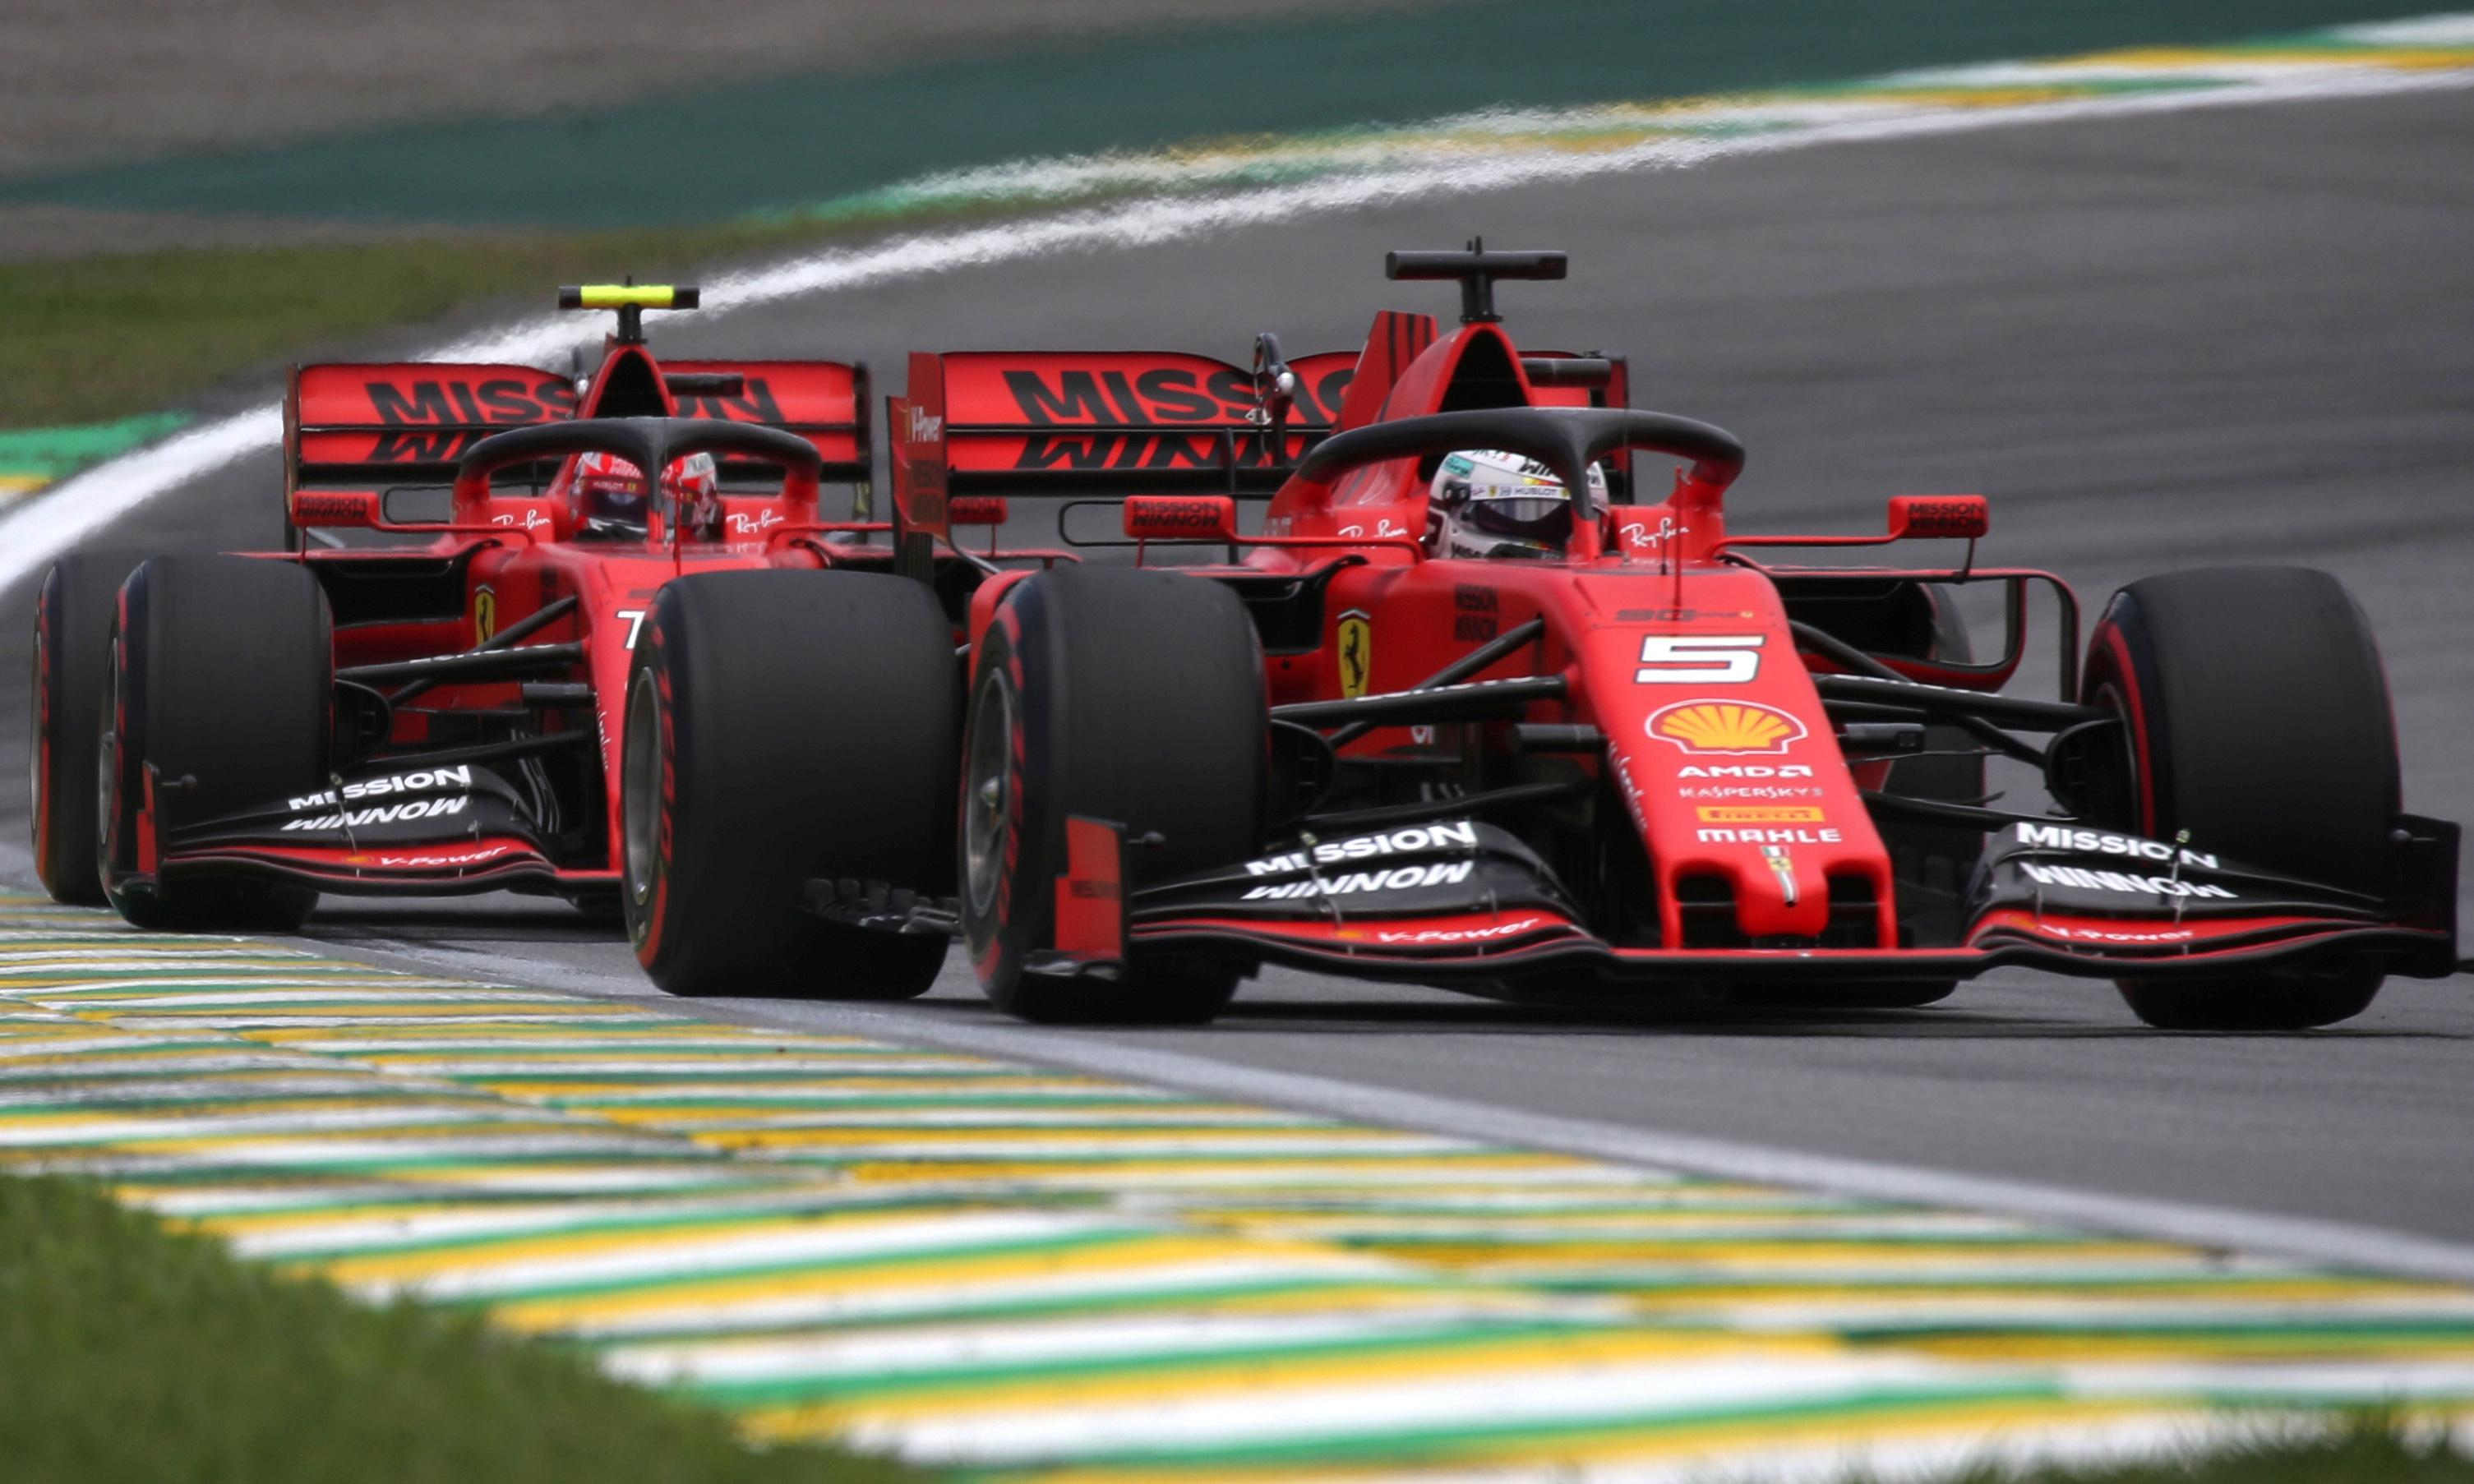 Charles Leclerc says Sebastian Vettel knows he was in the wrong for F1 crash